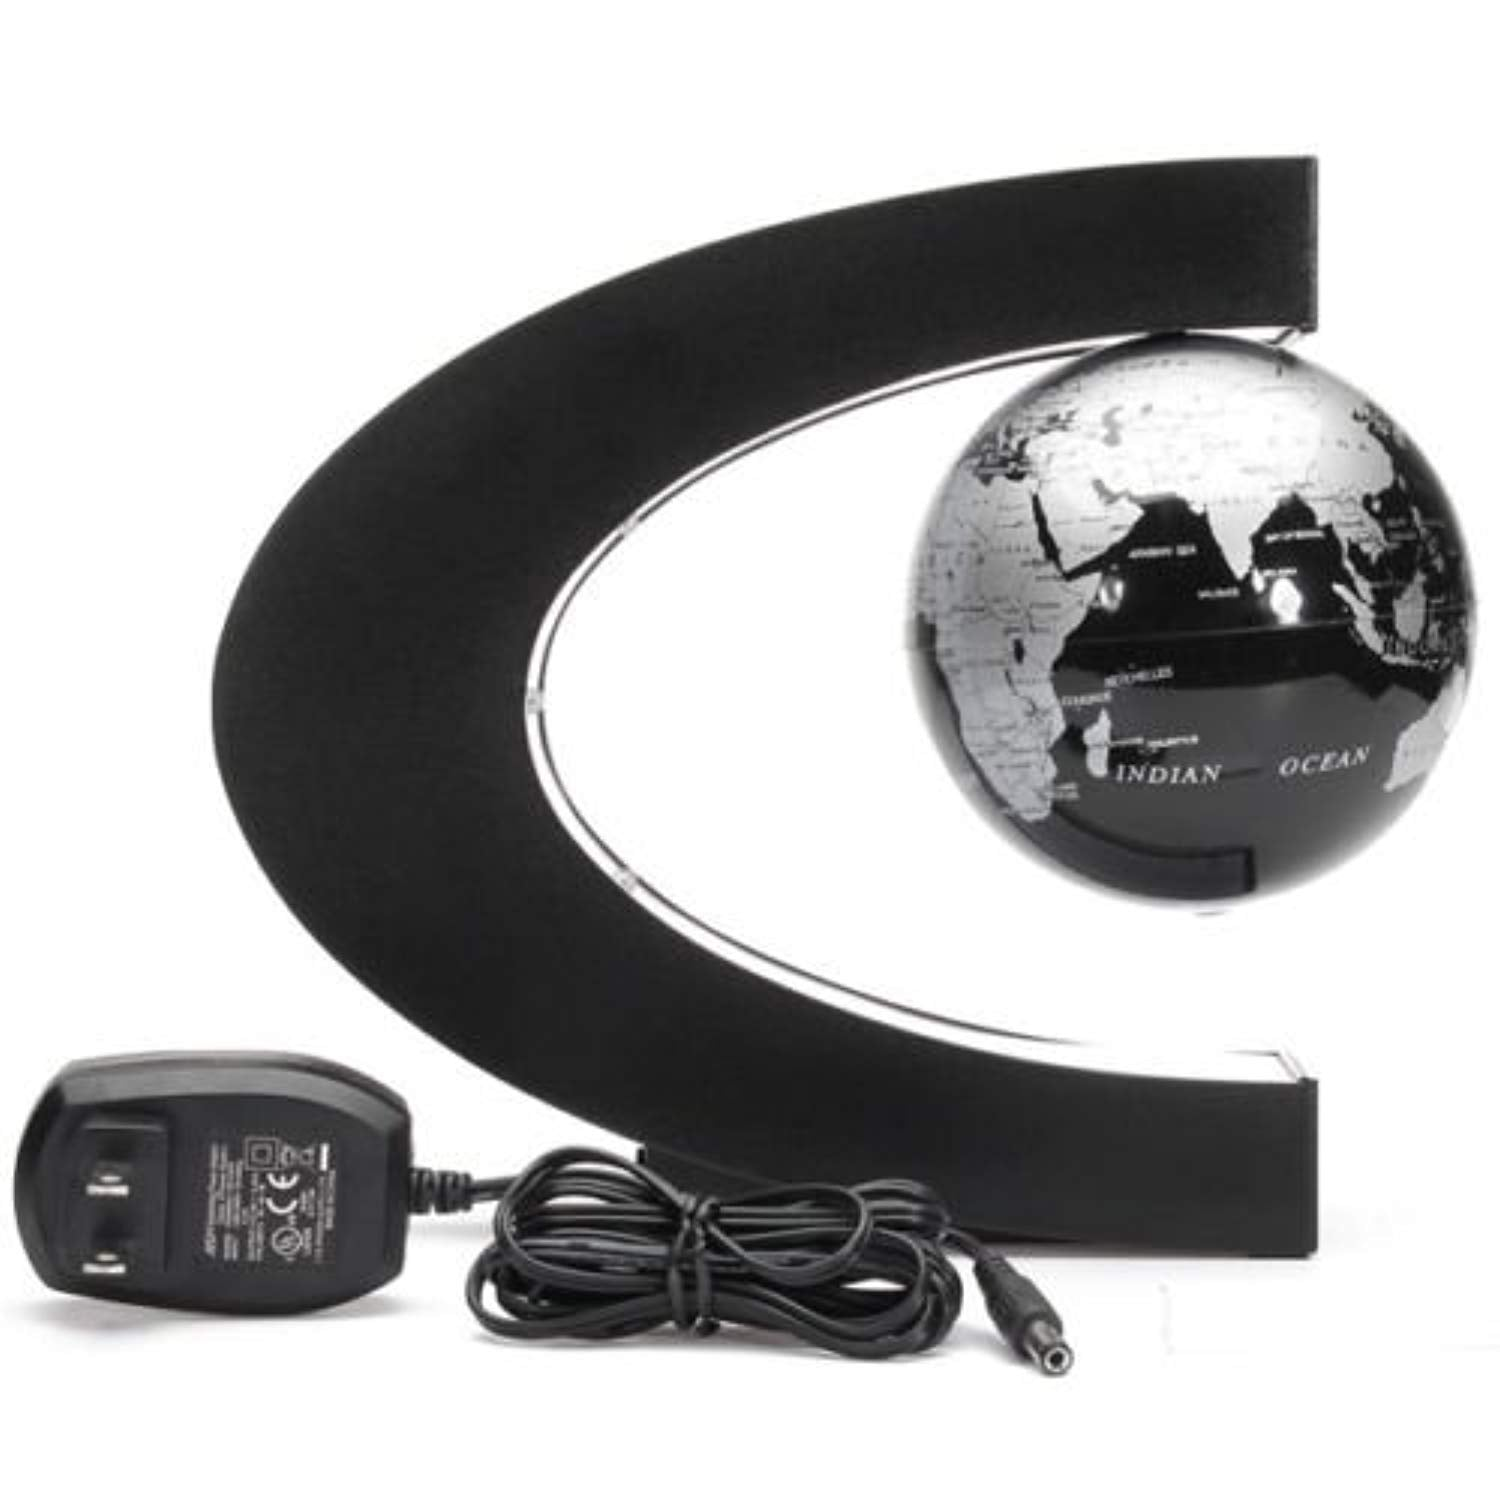 Magnetic Levitation Floating Globe for Rugby Kids to know teams around the world